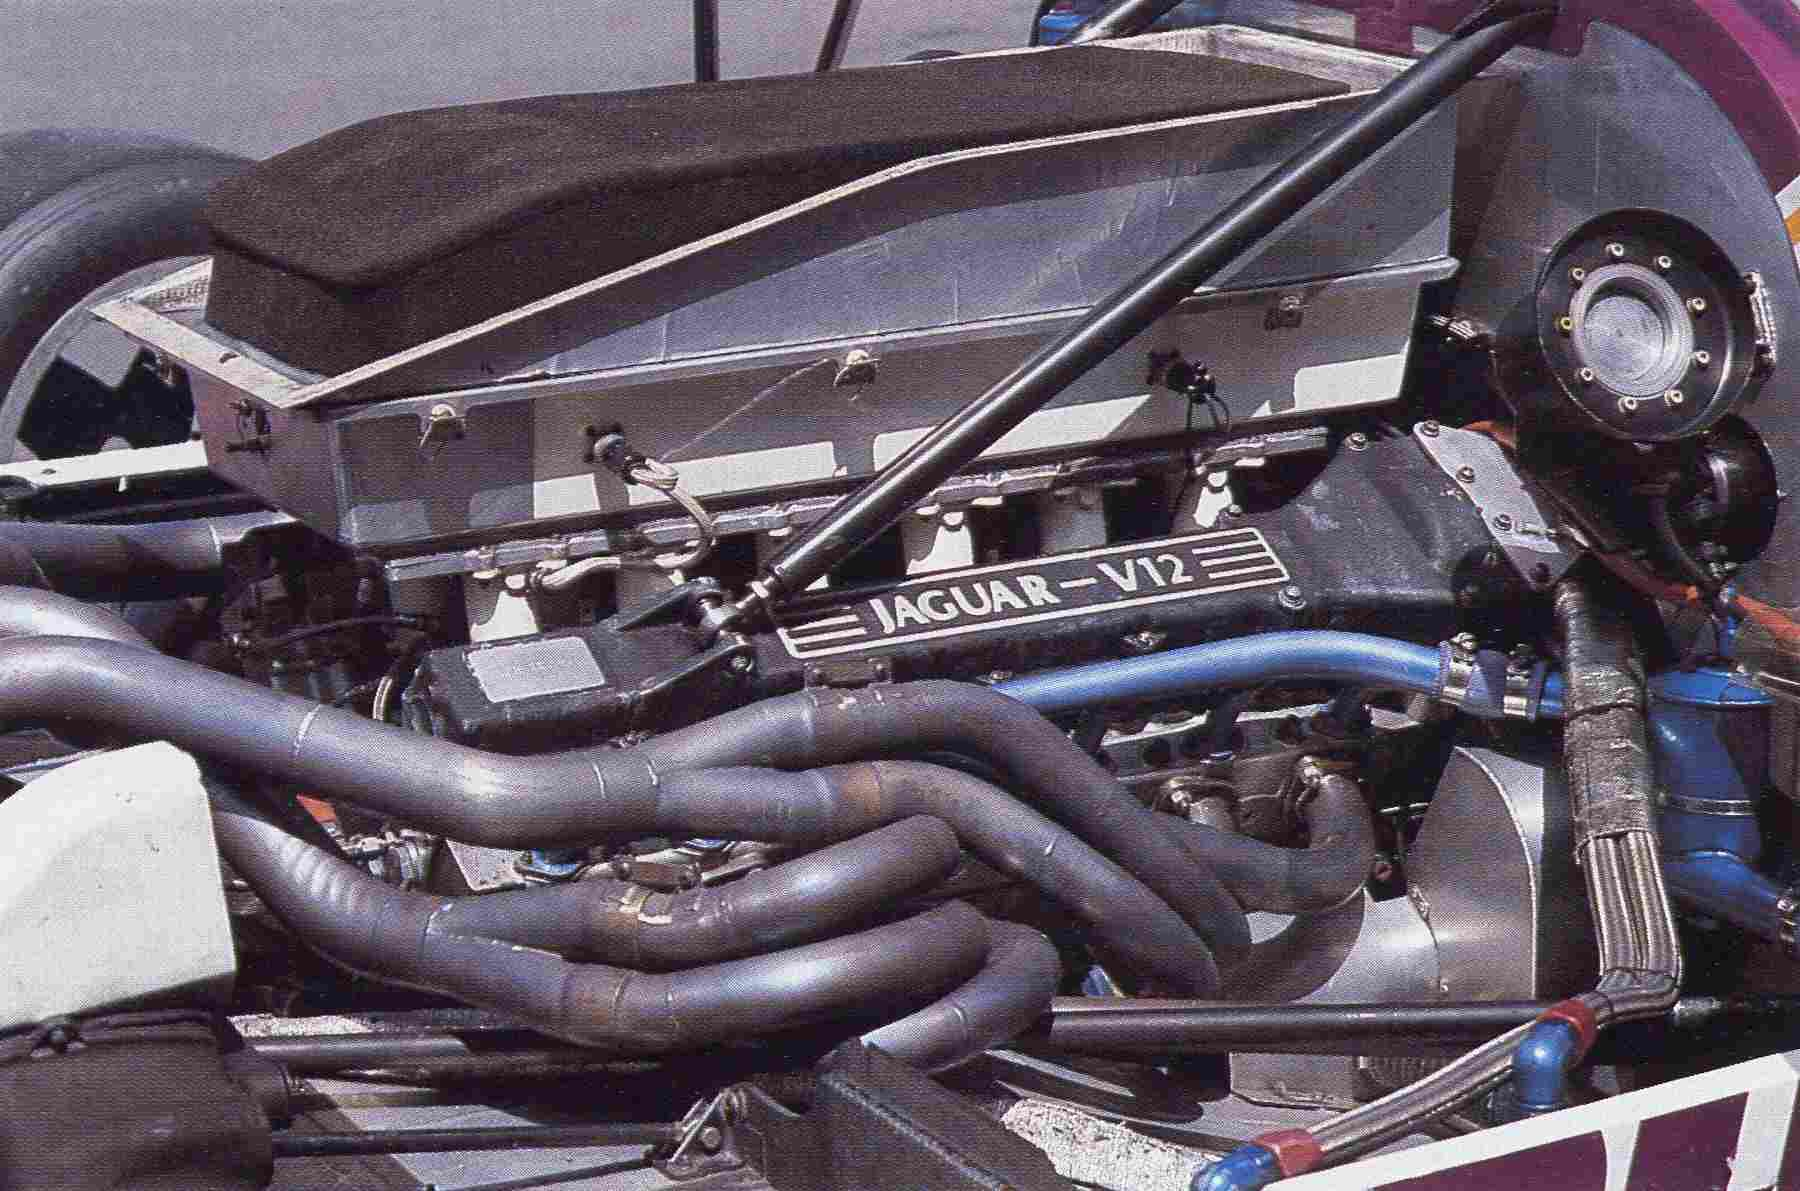 Tuned length multi-branch system of Jaguar XJR-9